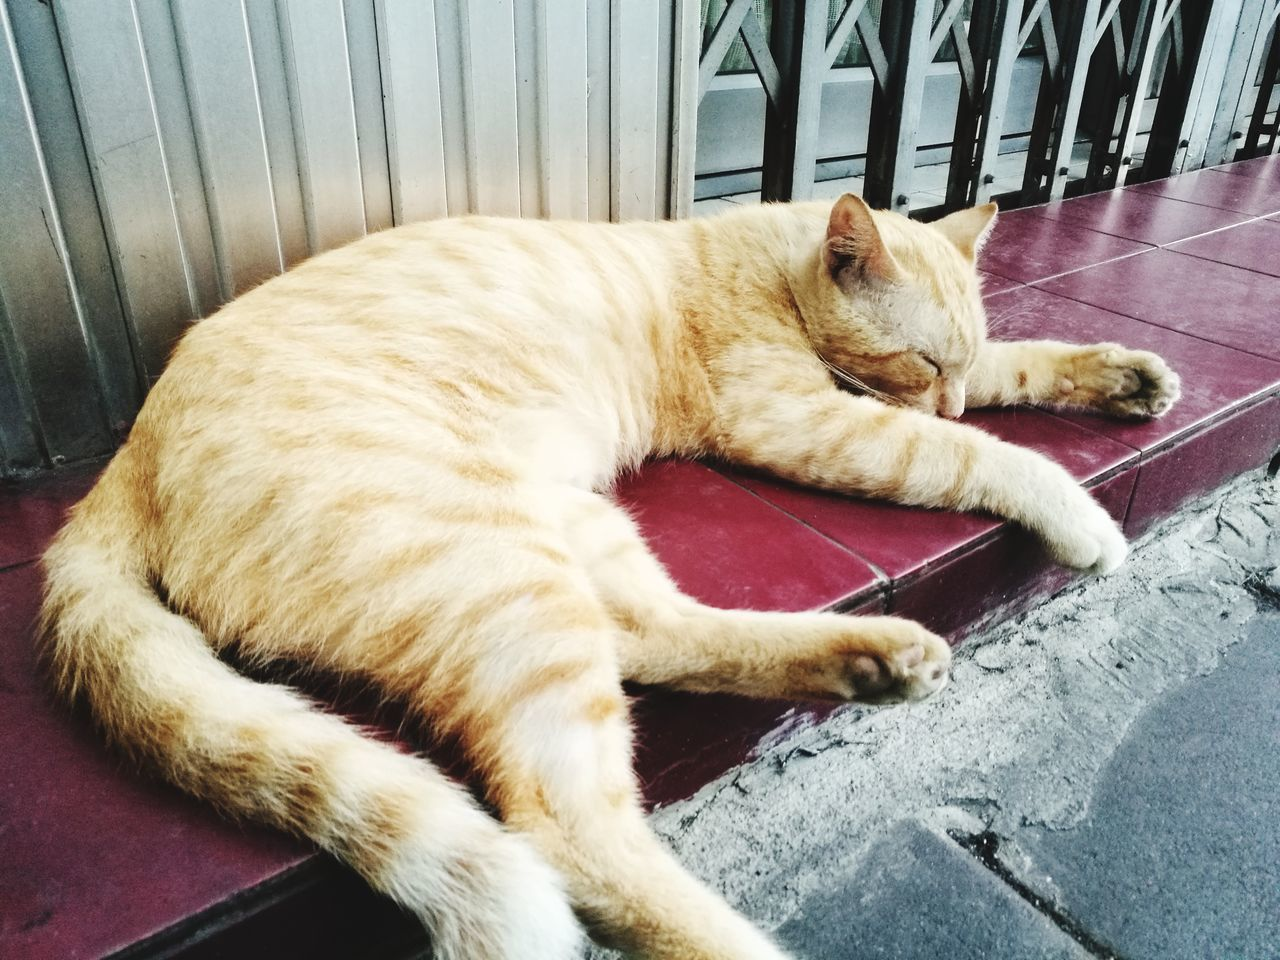 pets, domestic animals, mammal, animal themes, domestic cat, relaxation, one animal, sleeping, feline, lying down, dog, no people, day, outdoors